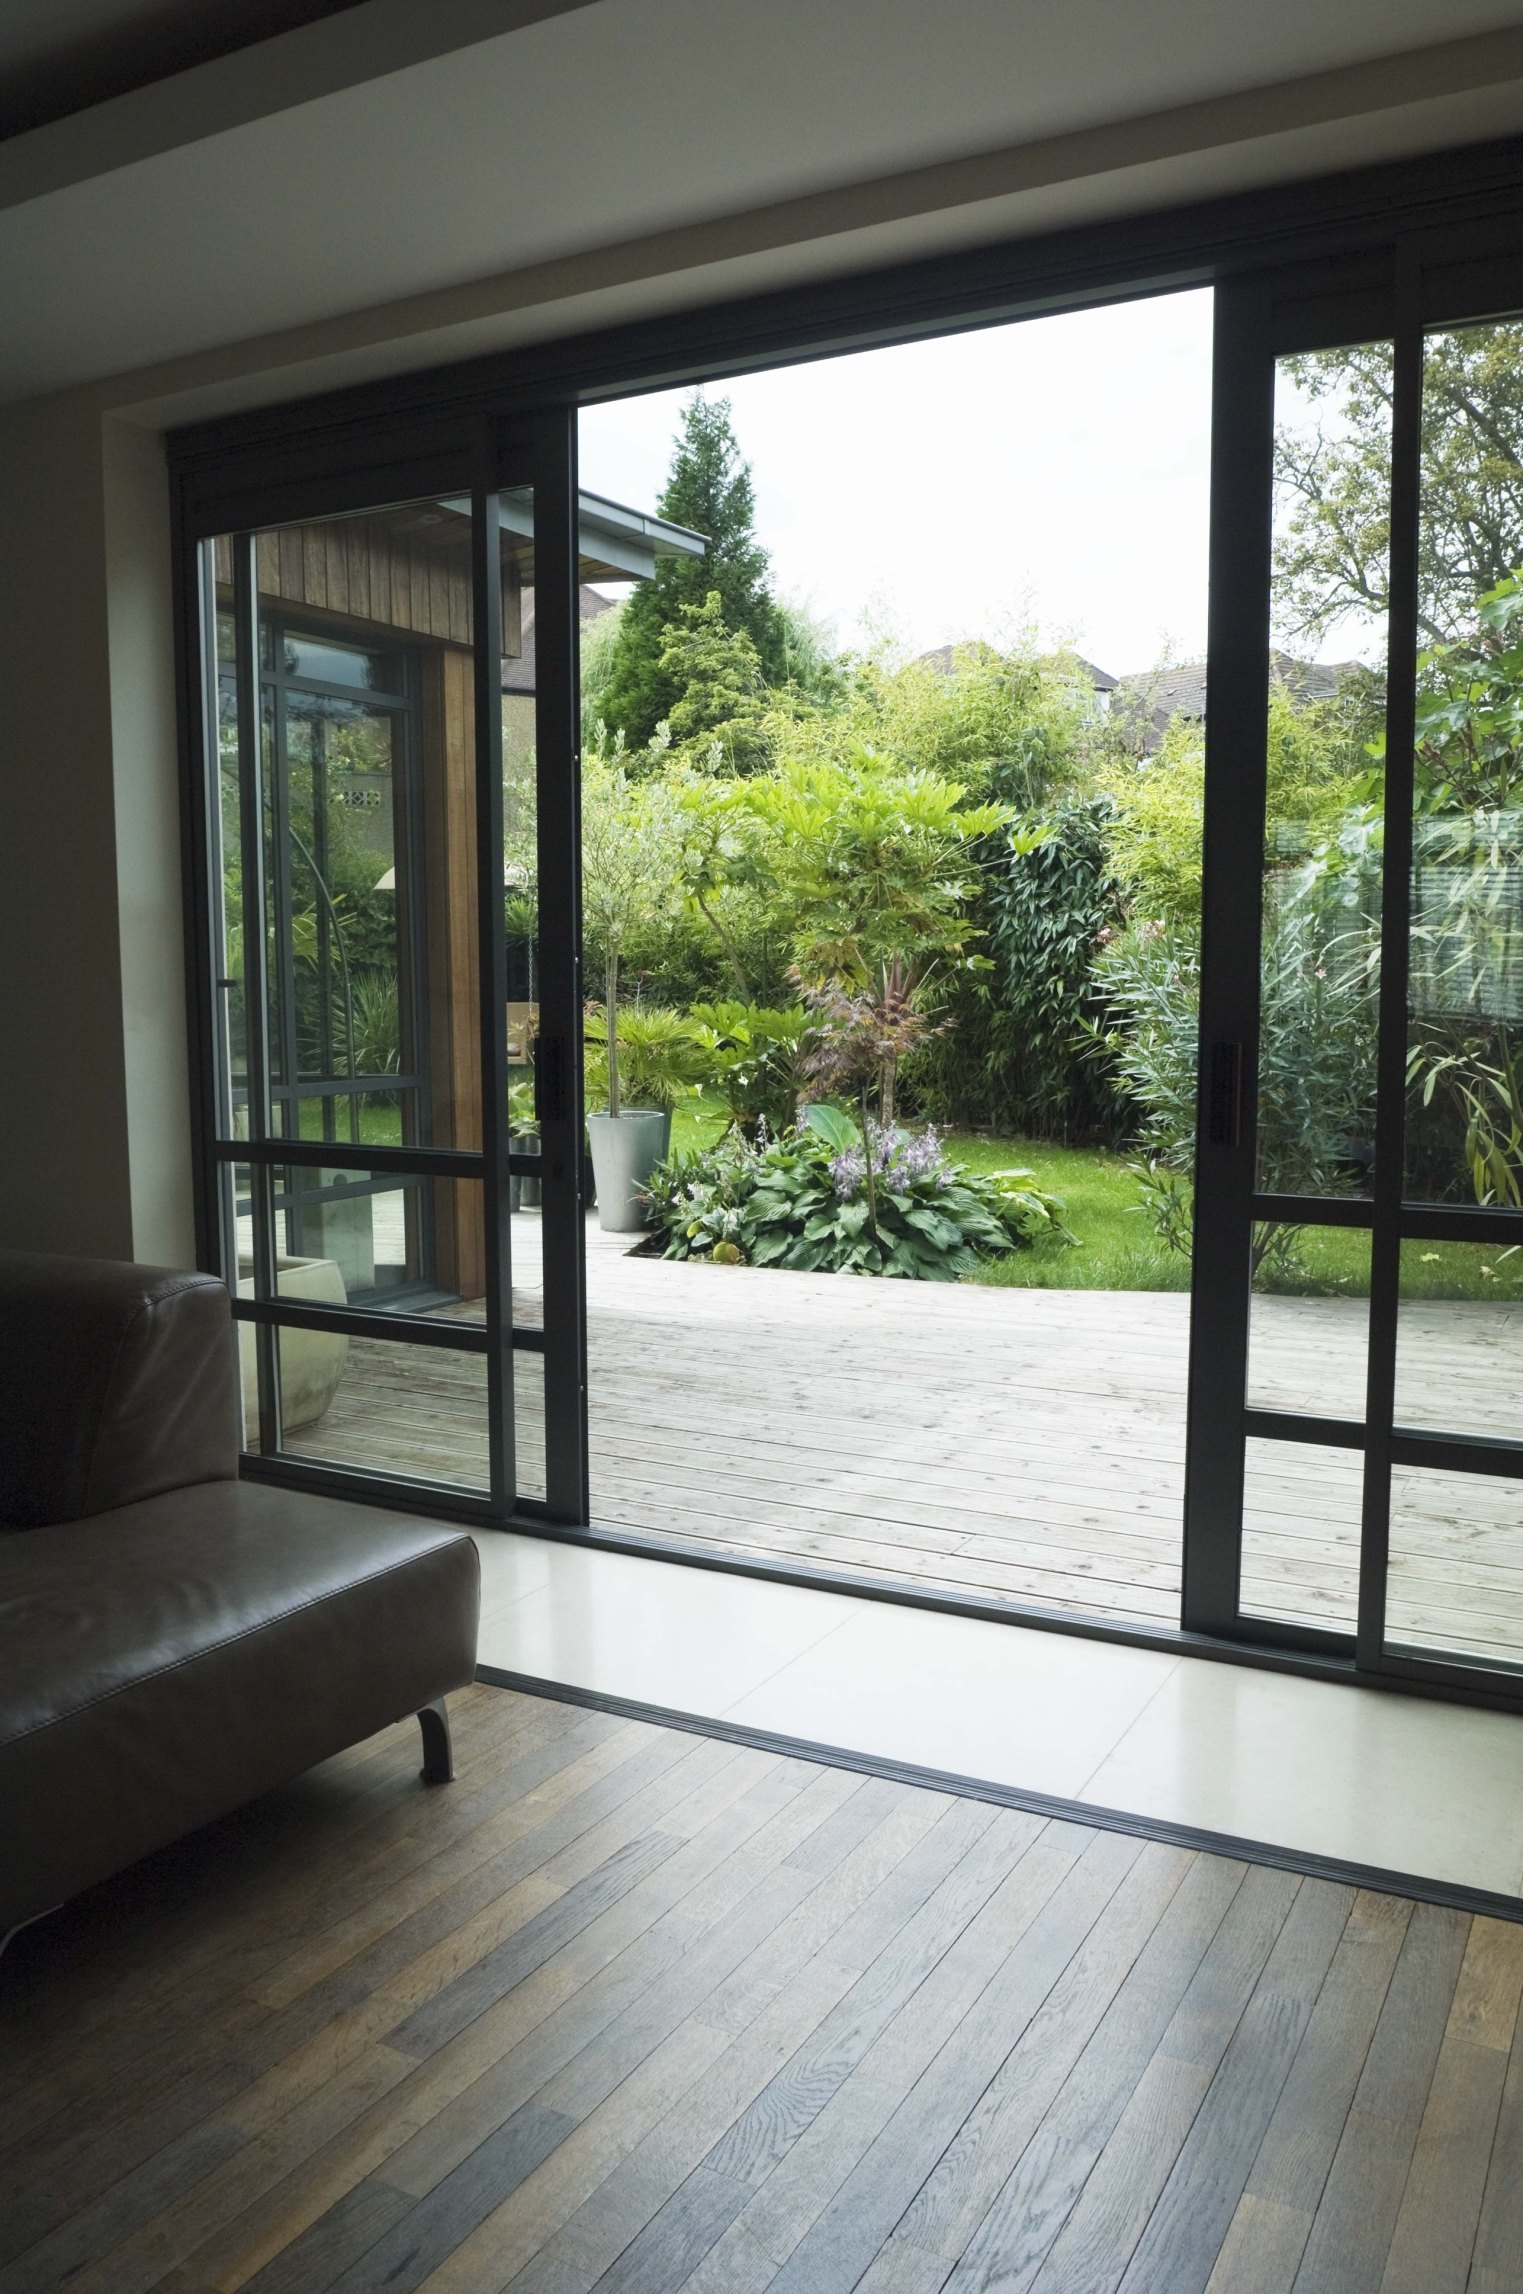 How to Fix a Squeaky Sliding Glass Door